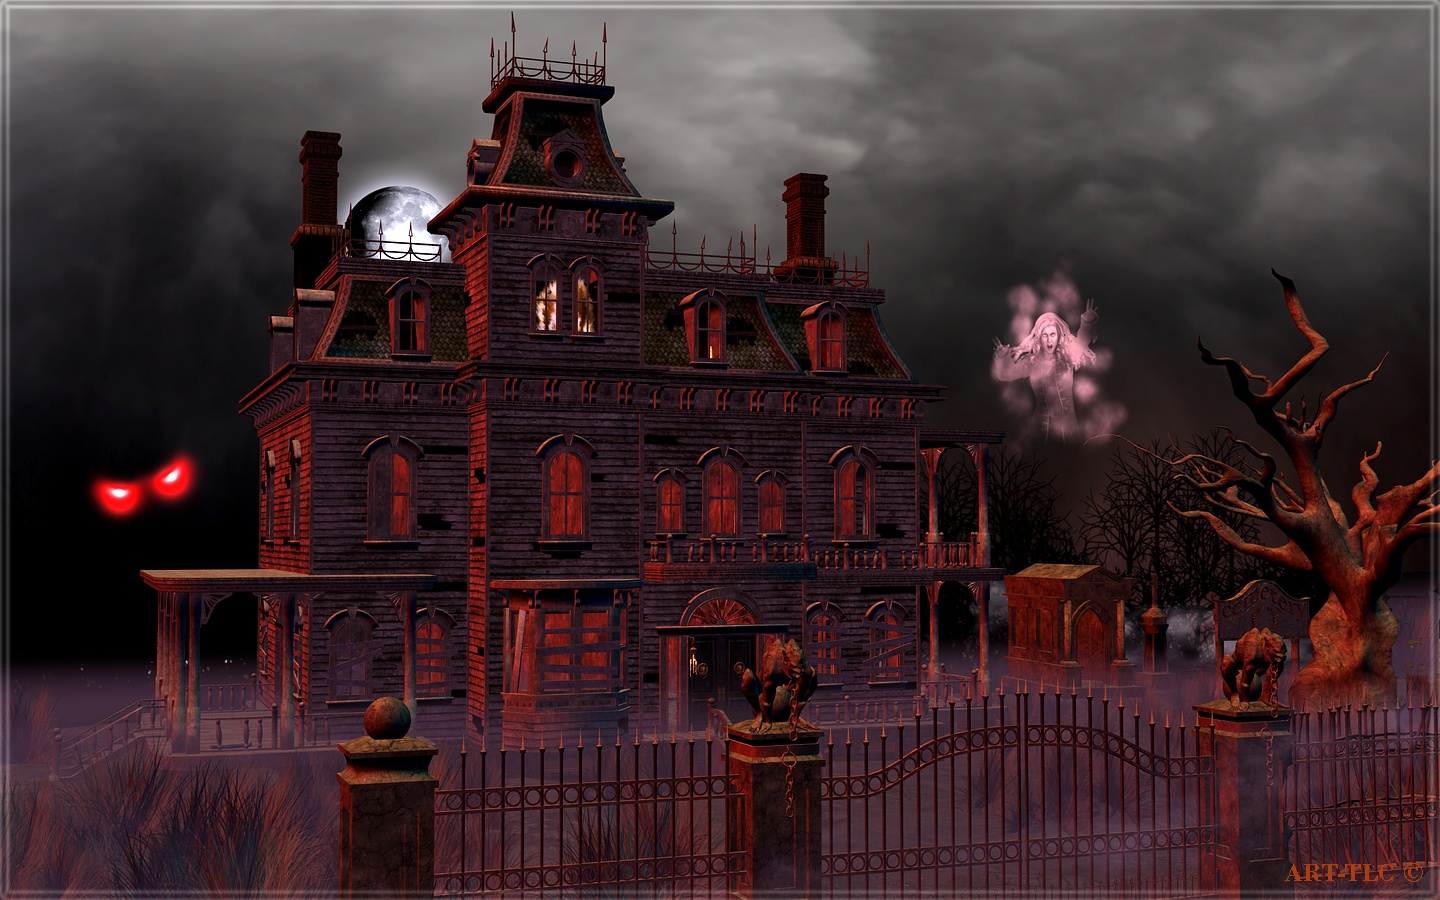 Old Fashioned House Animated Haunted House Desktop Wallpaper Wallpapersafari